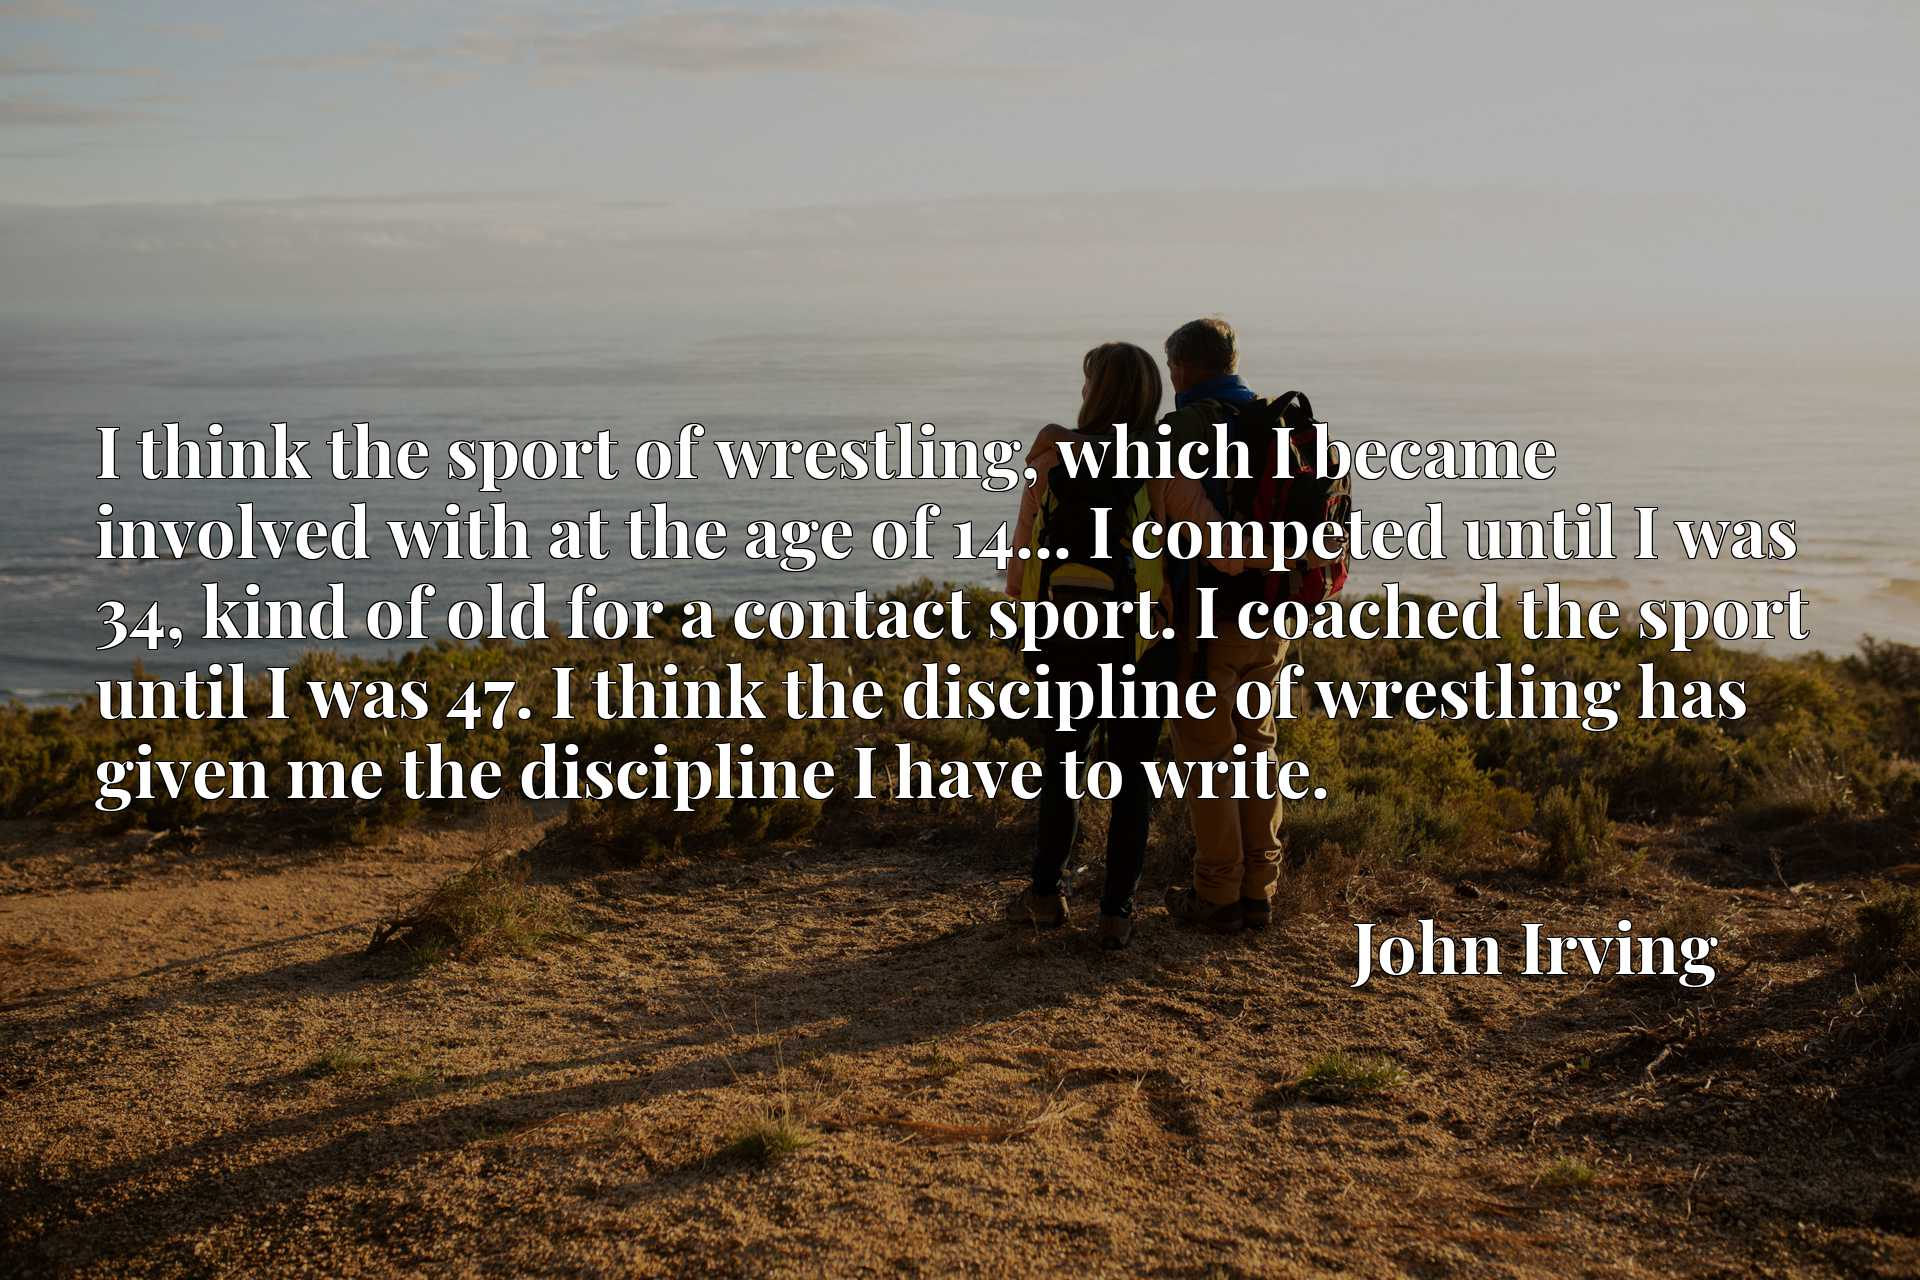 I think the sport of wrestling, which I became involved with at the age of 14... I competed until I was 34, kind of old for a contact sport. I coached the sport until I was 47. I think the discipline of wrestling has given me the discipline I have to write.